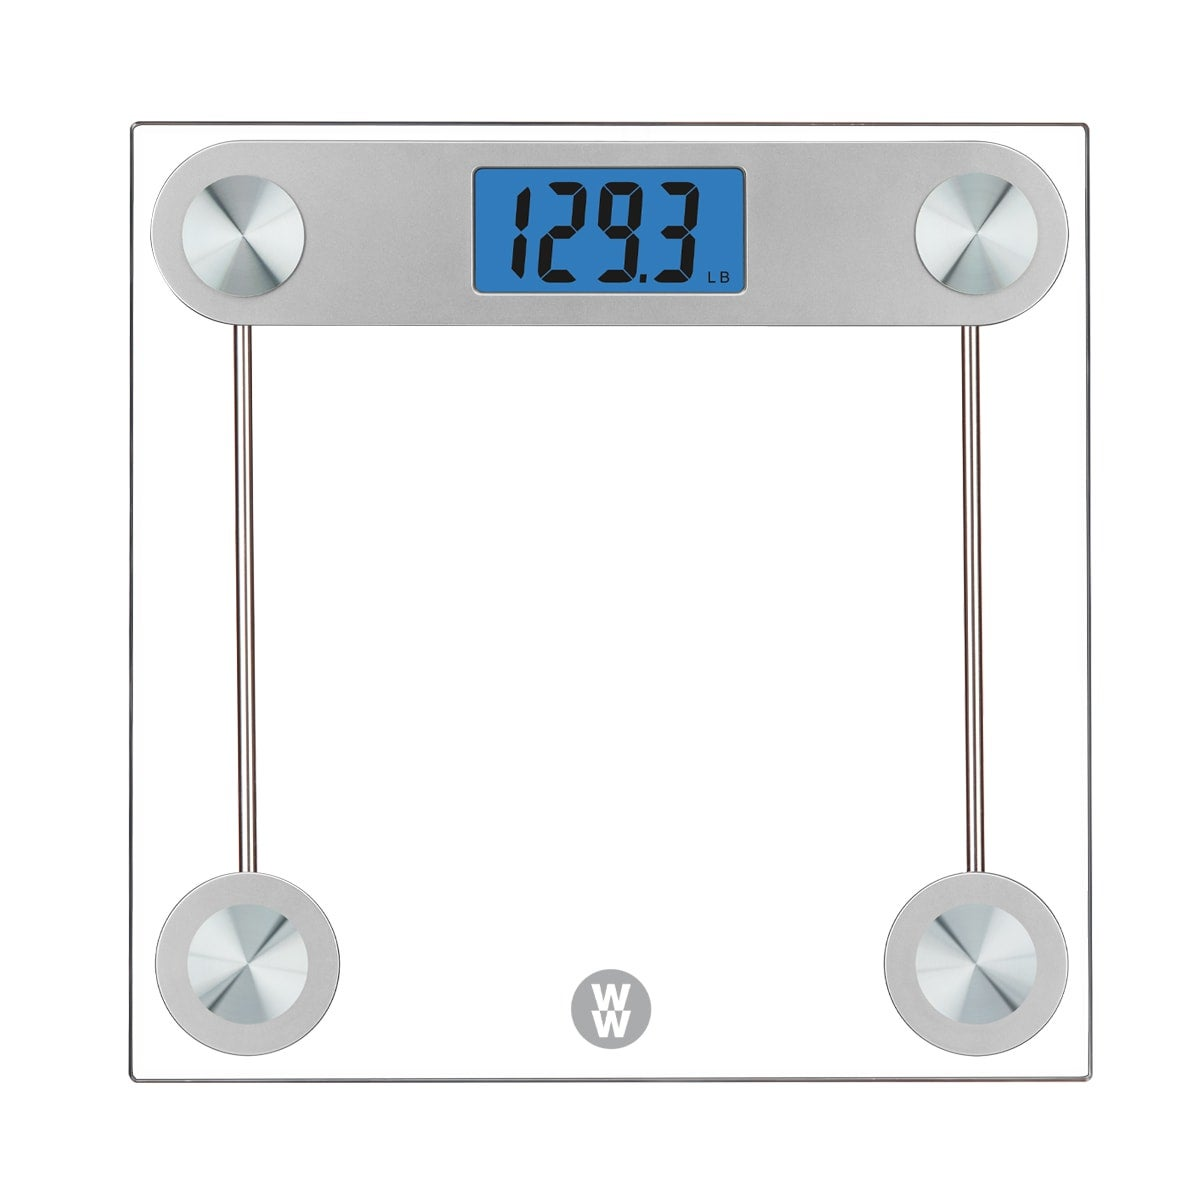 WW Scales By Conair Digital Glass Large 1.5 - inch LCD  blue backlight, includes  3 AAA alkaline batteries, Capacity: 400 lb Tempered Safety Glass with Stainless Steel Silver Finish Platform Size: 11.8 x 11.8 inches